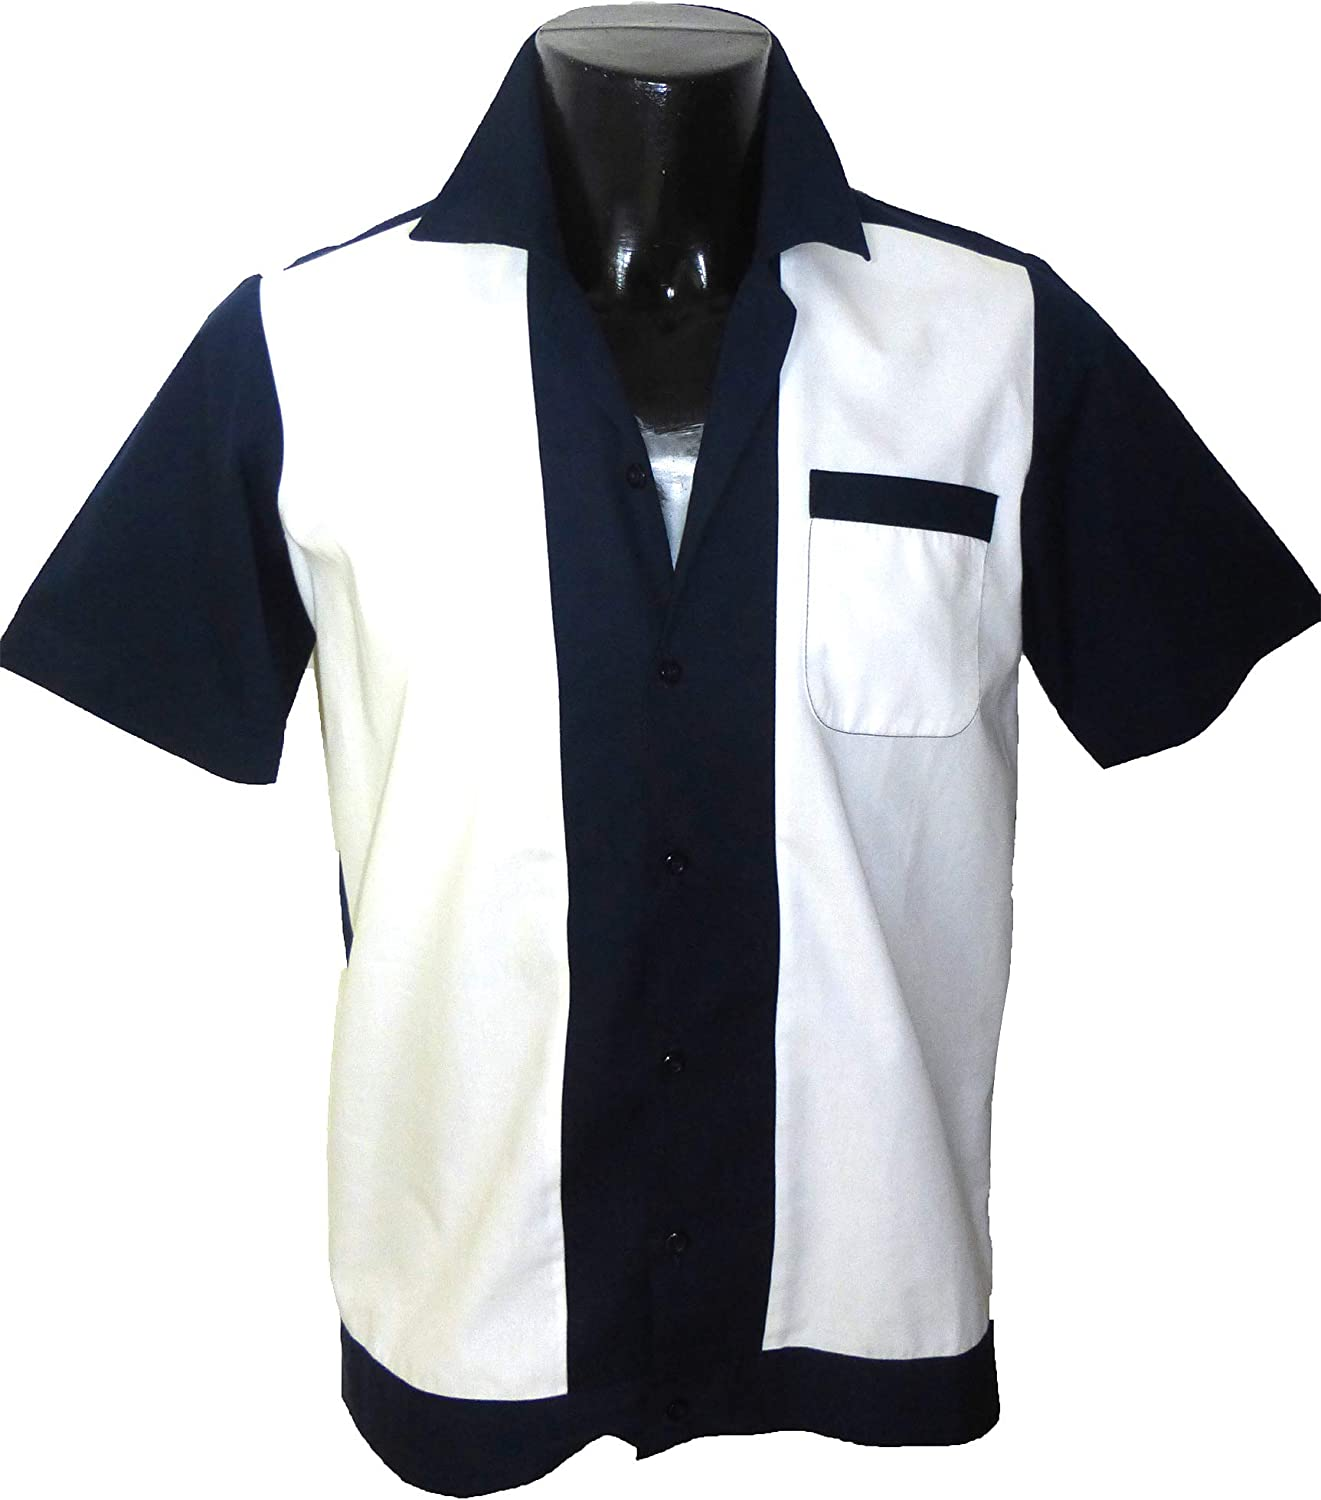 Mens Vintage Shirts – Casual, Dress, T-shirts, Polos 1950s/1960s RockabillyBowling Retro Vintage Mens Shirt £21.99 AT vintagedancer.com